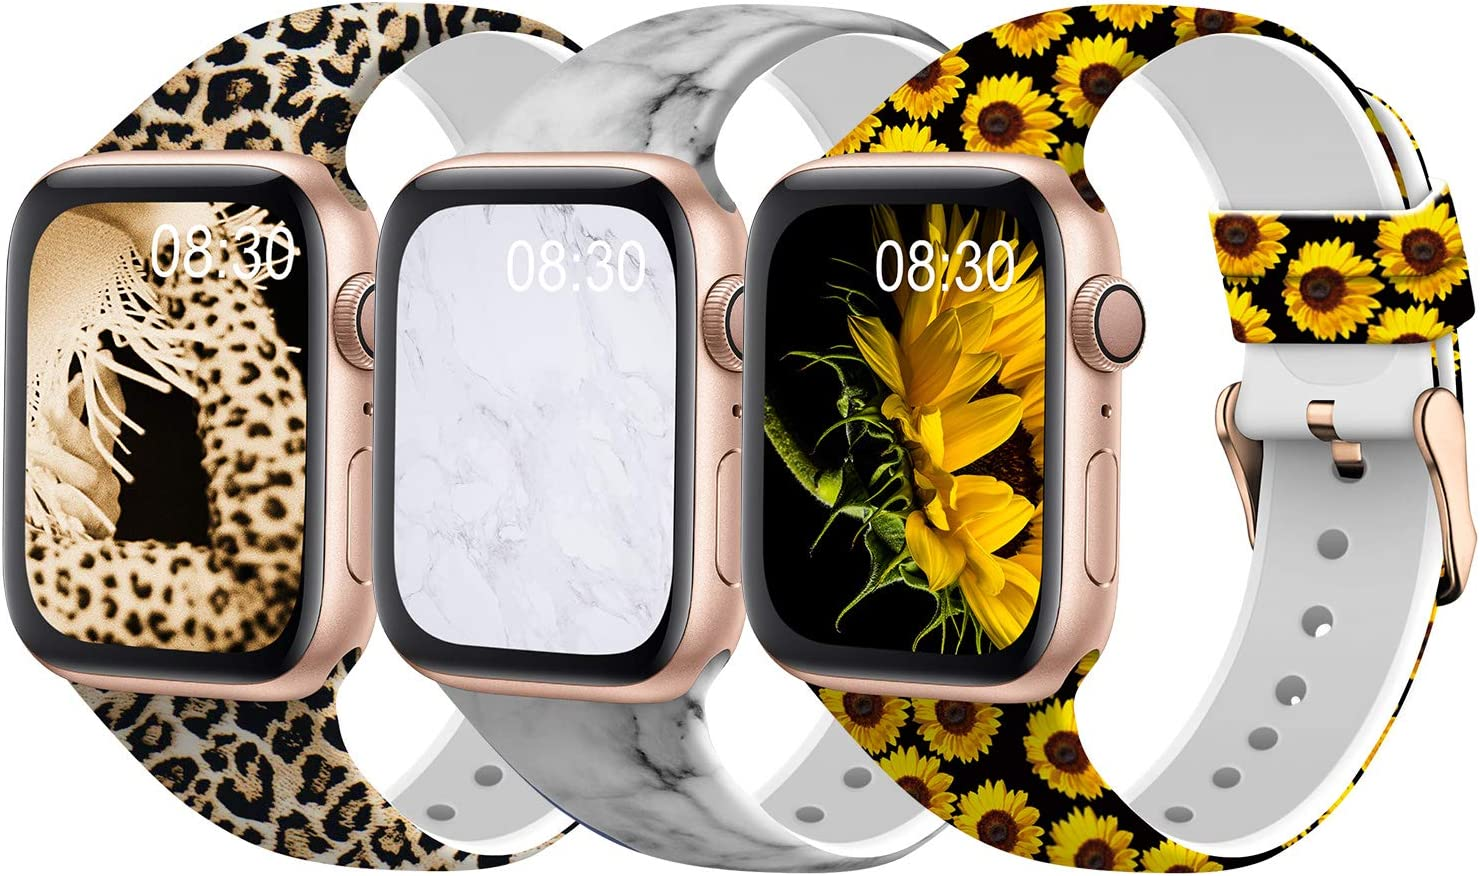 TSAAGAN Silicone Pattern Printed Band Compatible for Apple Watch Band 38mm 42mm 40mm 44mm, Floral Soft Replacement Strap Wristband for iWatch Series 6/5/4/3/2/1 (Leopard/Marble/Sunflower, 38mm/40mm)